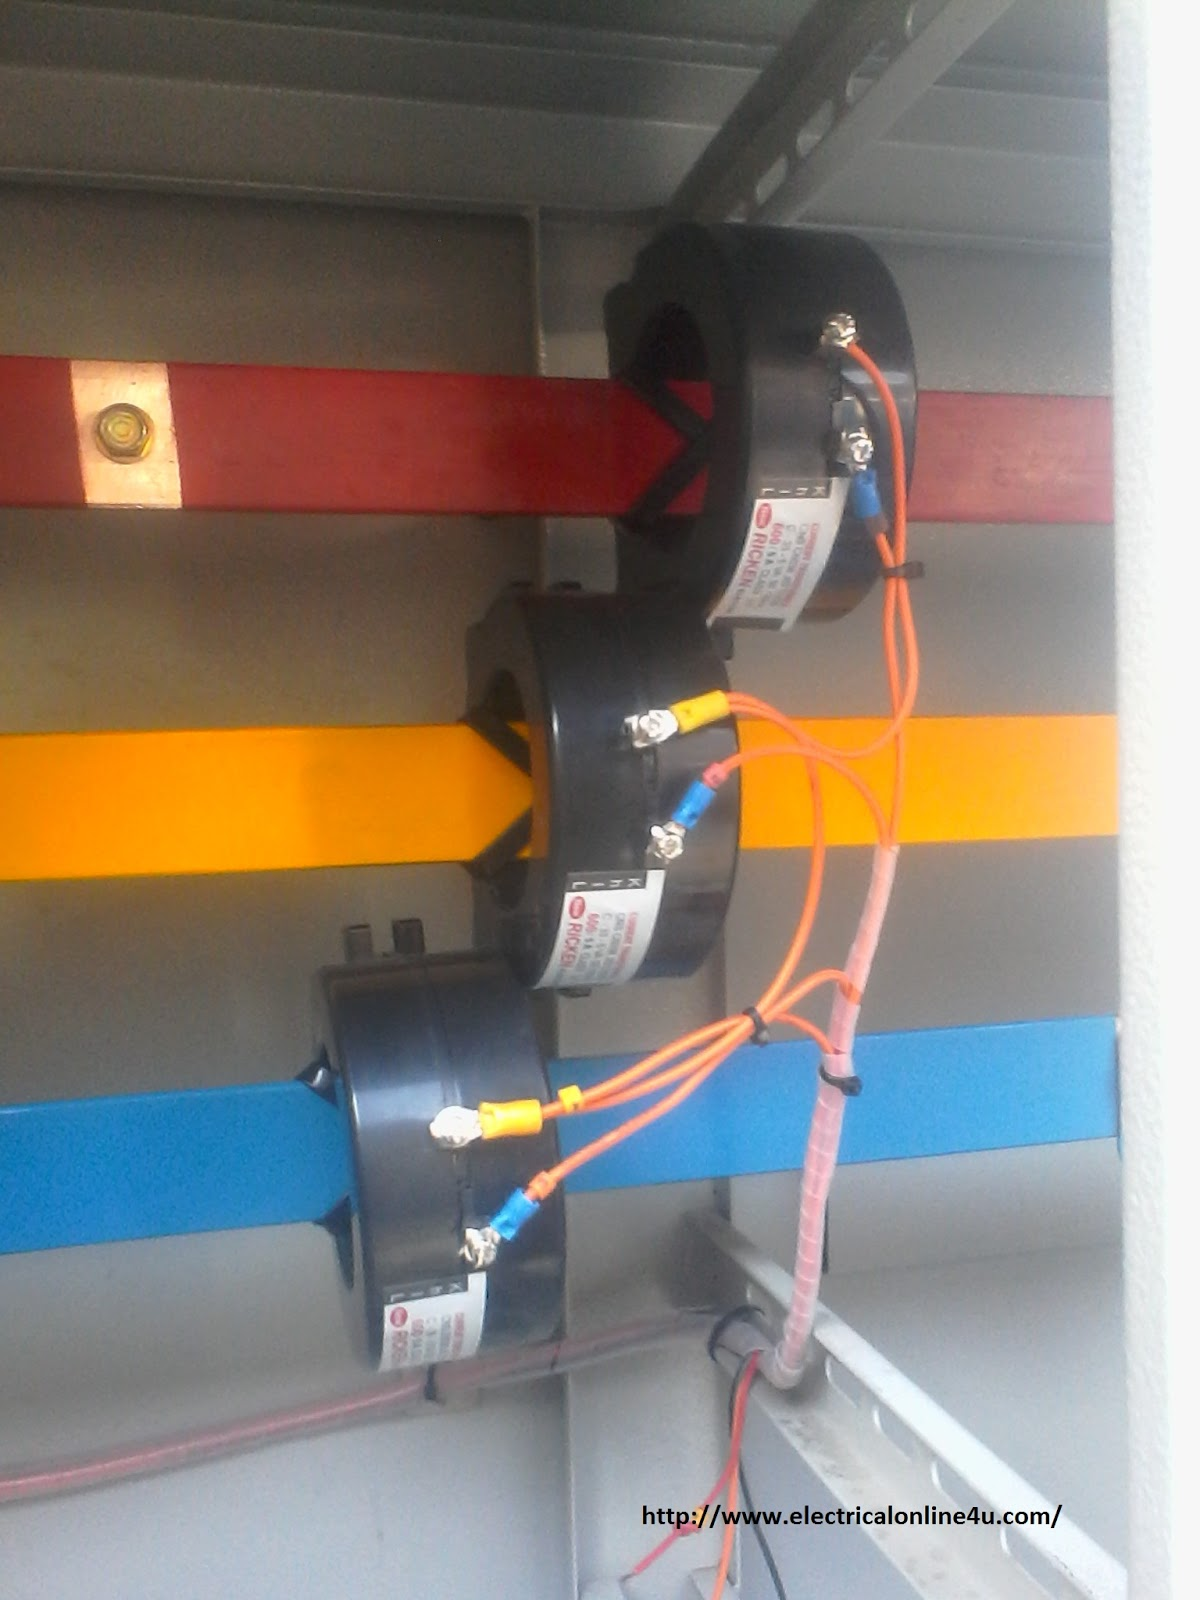 current%2Btransformer%2Binstillation%2Bfor%2Bthree%2Bphase%2Bwiring current transformer installation for three phase power supply ct Basic Electrical Wiring Diagrams at edmiracle.co